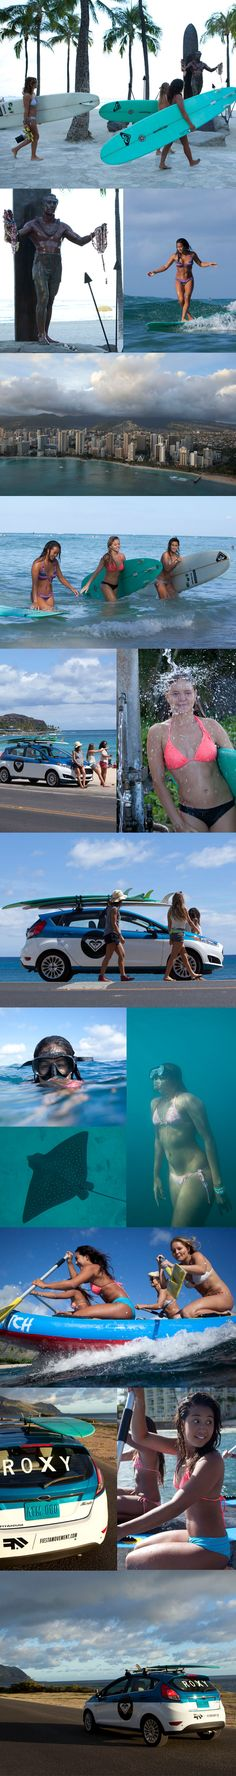 ROXY Hawaii: Join Kelia's Ride with FORD FIESTA #FiestaMovement   Episode 2 is here! Watch it now!